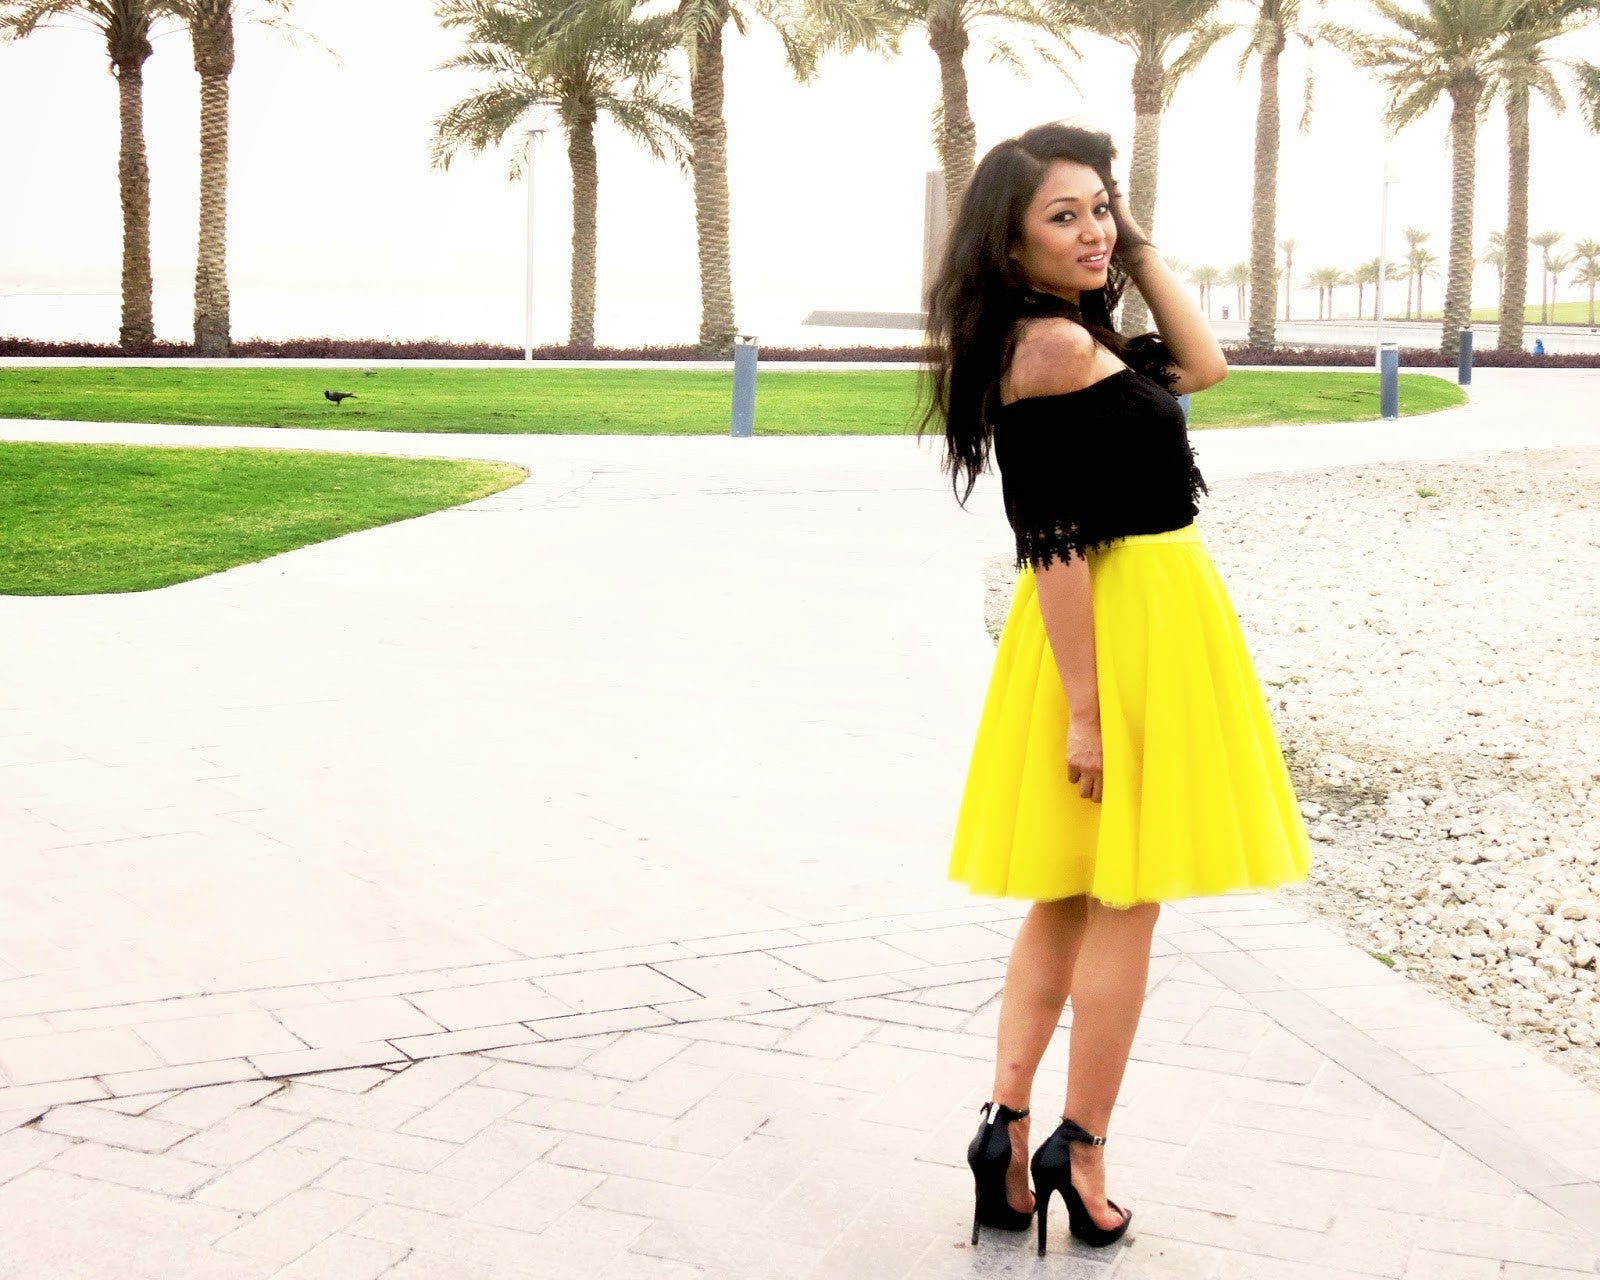 Progressive Panache Anie Phukan in Lemon Fizz Skirt